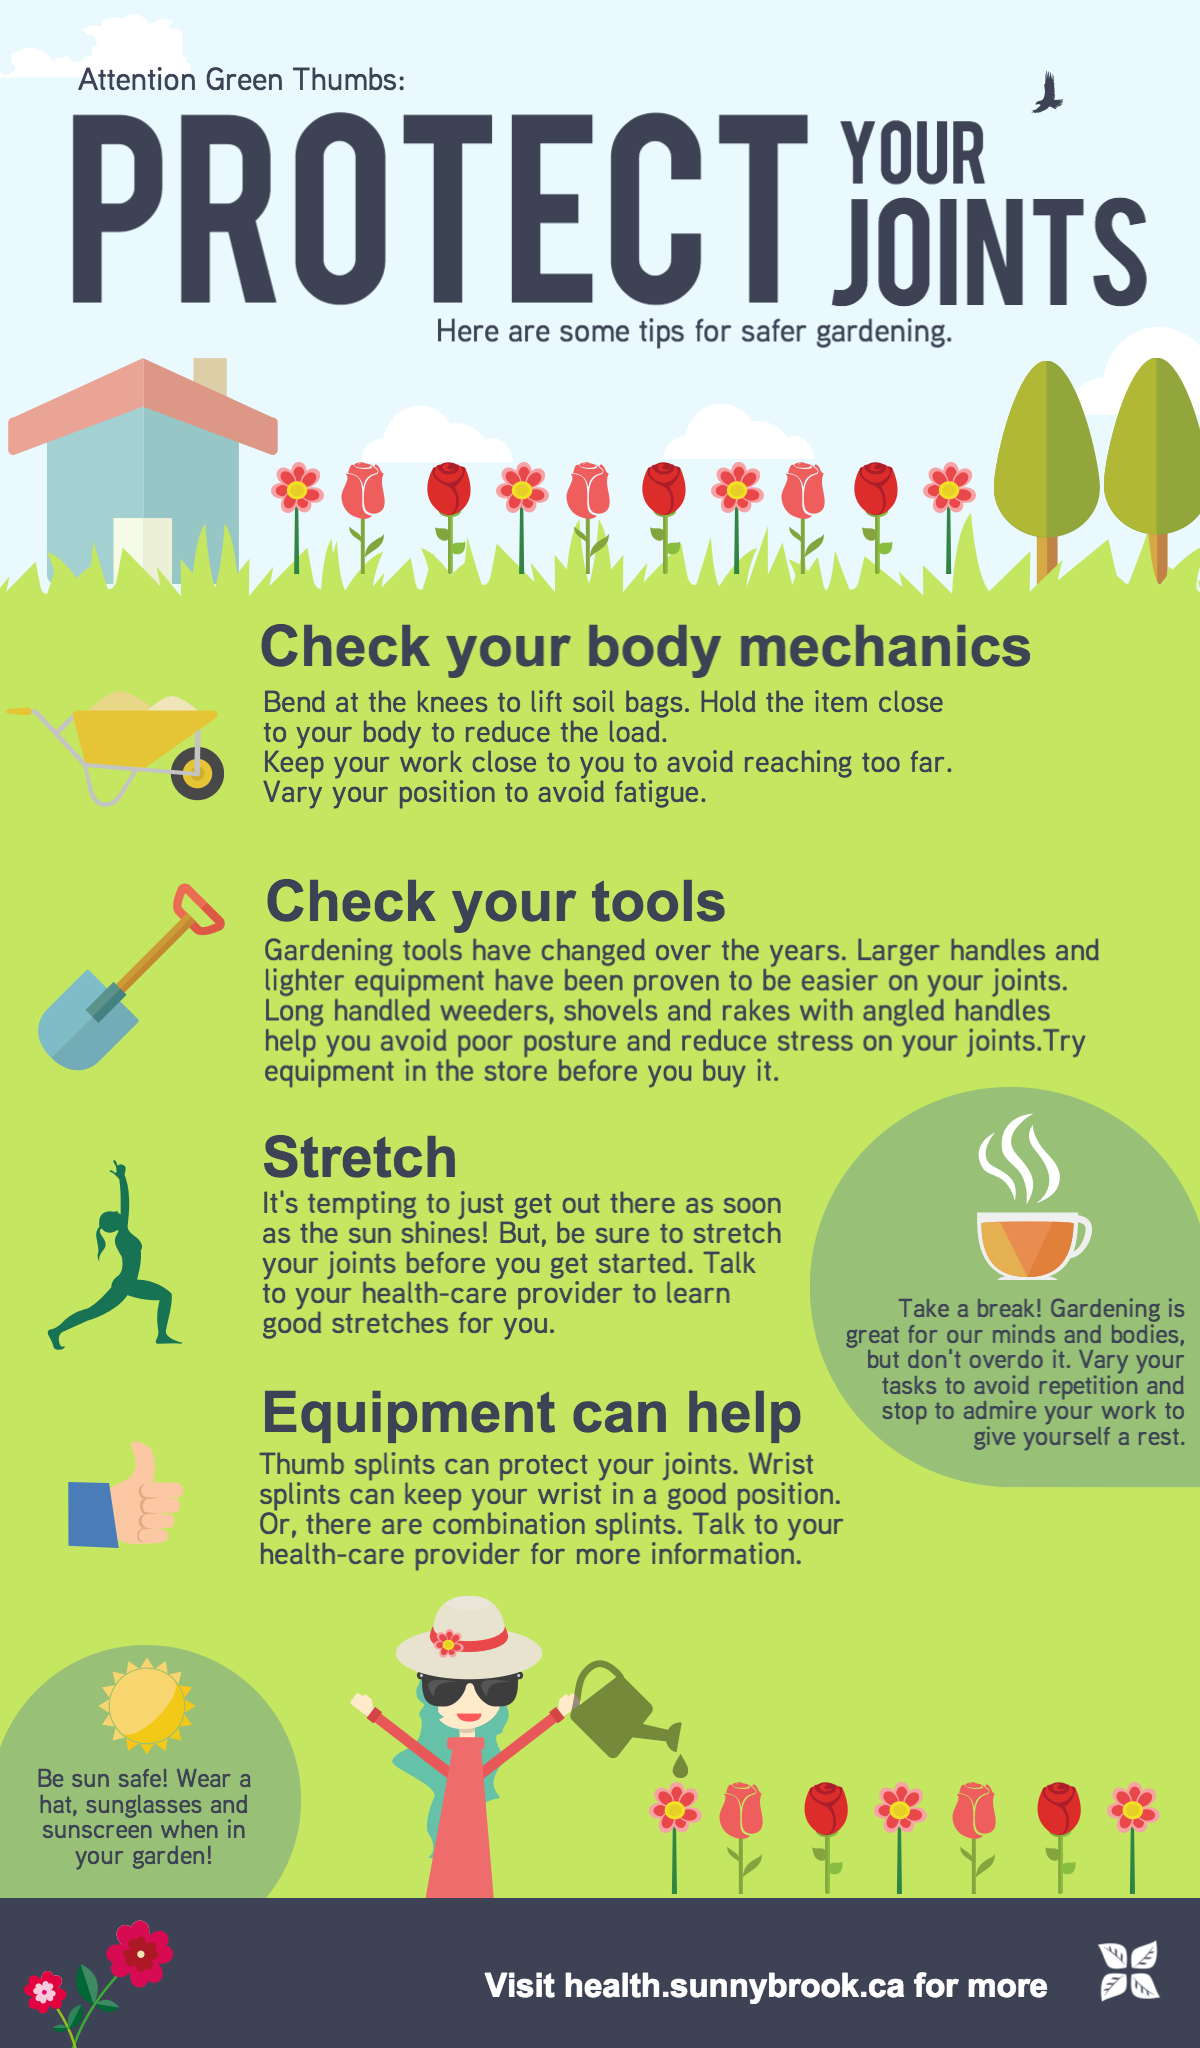 Attention Green Thumbs Protect Your Joints In The Garden Health